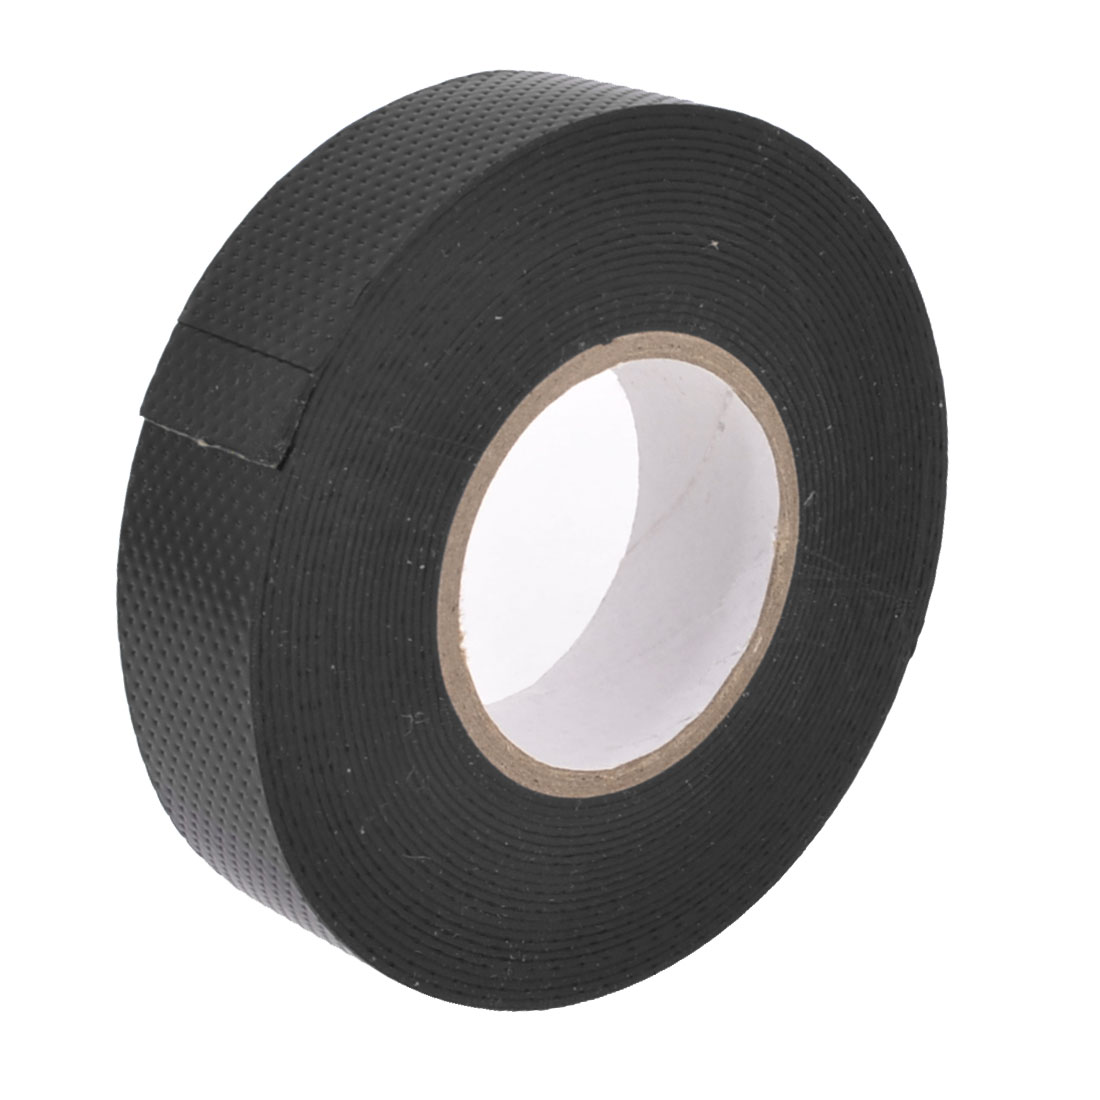 Electric Wire Protector Black PVC Insulating Tape 15ft Length